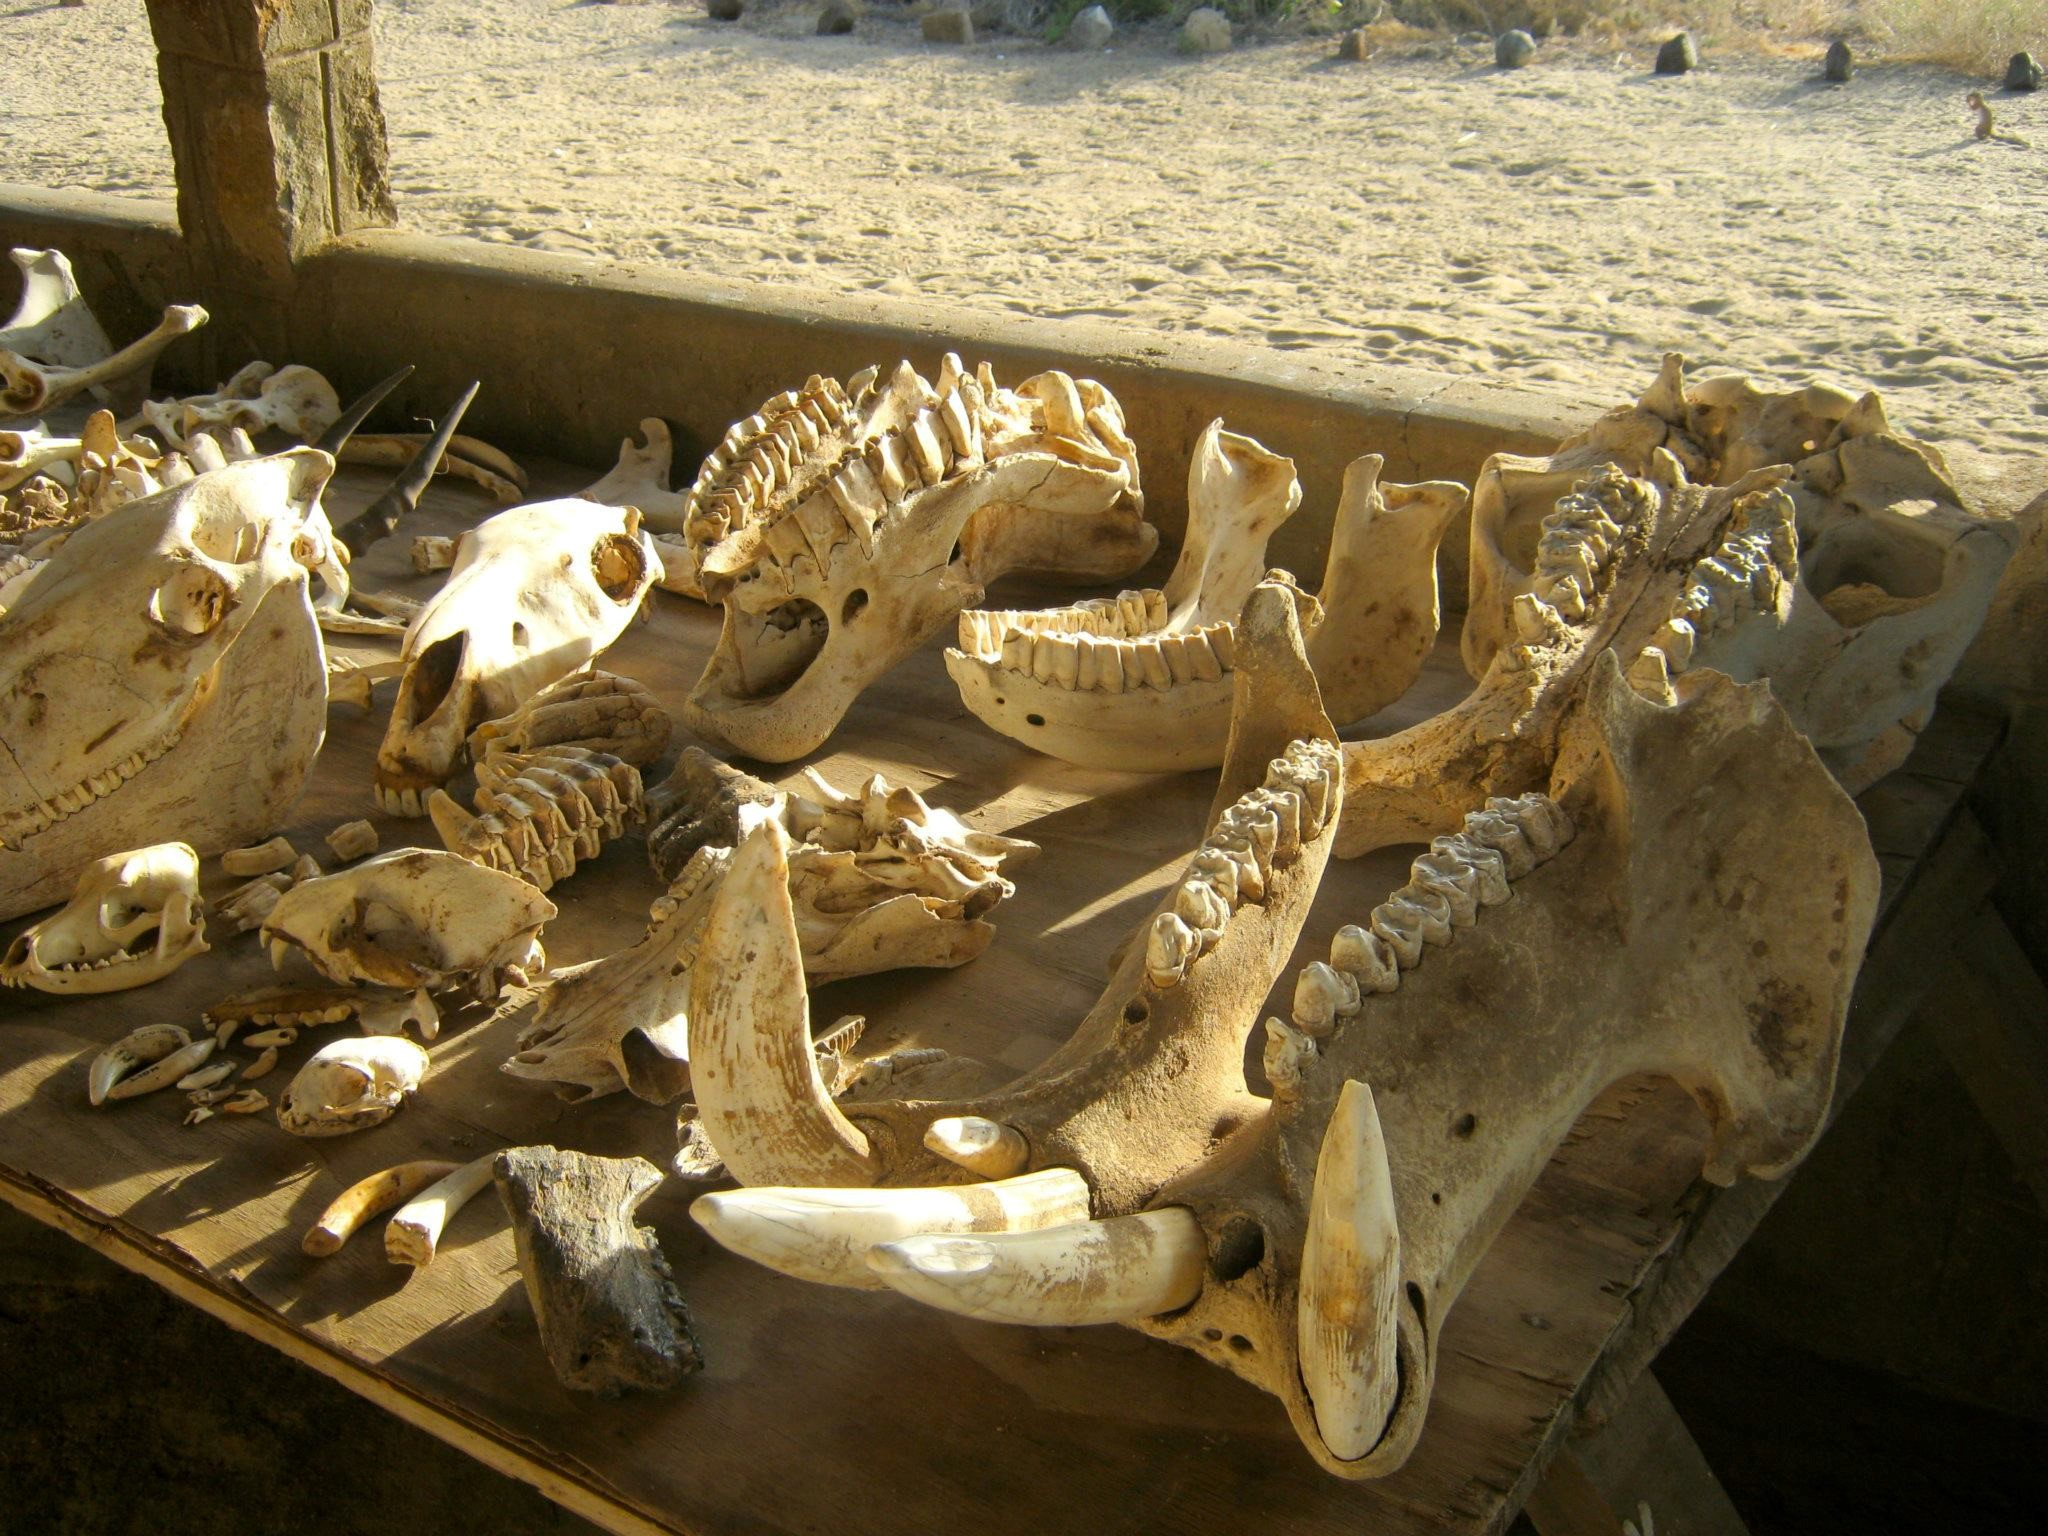 Skulls and teeth from living large-bodied mammals in Kenya, including hippo, black rhino, and elephant .